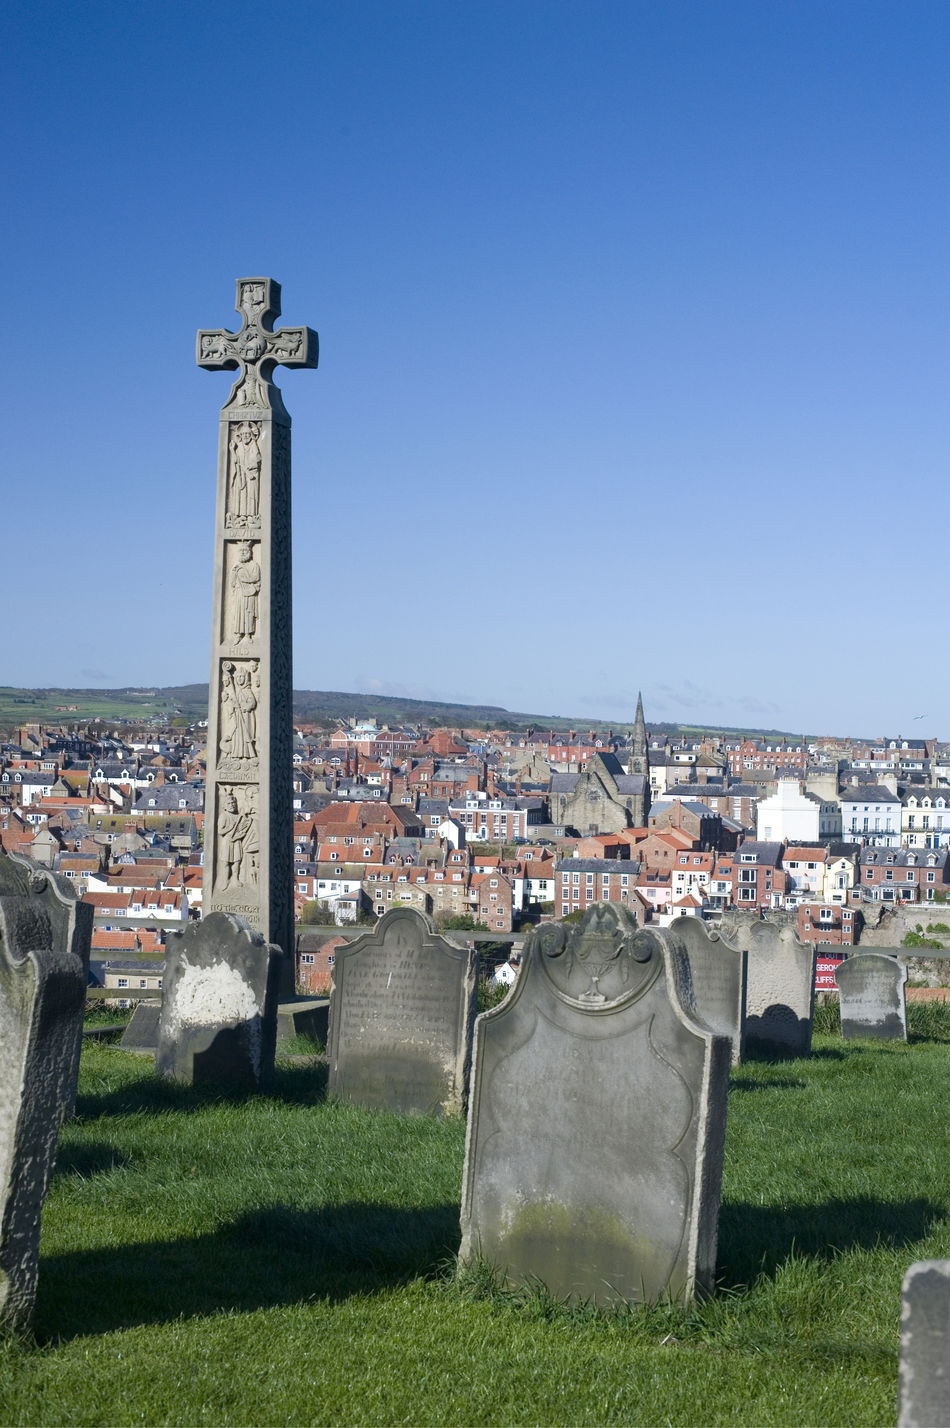 Caedmons Cross, an ornately carved and inscribed stone celtic cross commemorating, Caedmon, an Anglo-Saxon, poet and songwriter, in St Marys Graveyard in Whitby Anglo-saxon Caedmon Caedmons Cross Carvings Celtic Clear Sky Cross England Graveyard Historical Inscribed Landmark Medieval Memorial Monkmonument North Yorkshire Ornate Poet Religion Sightseeing